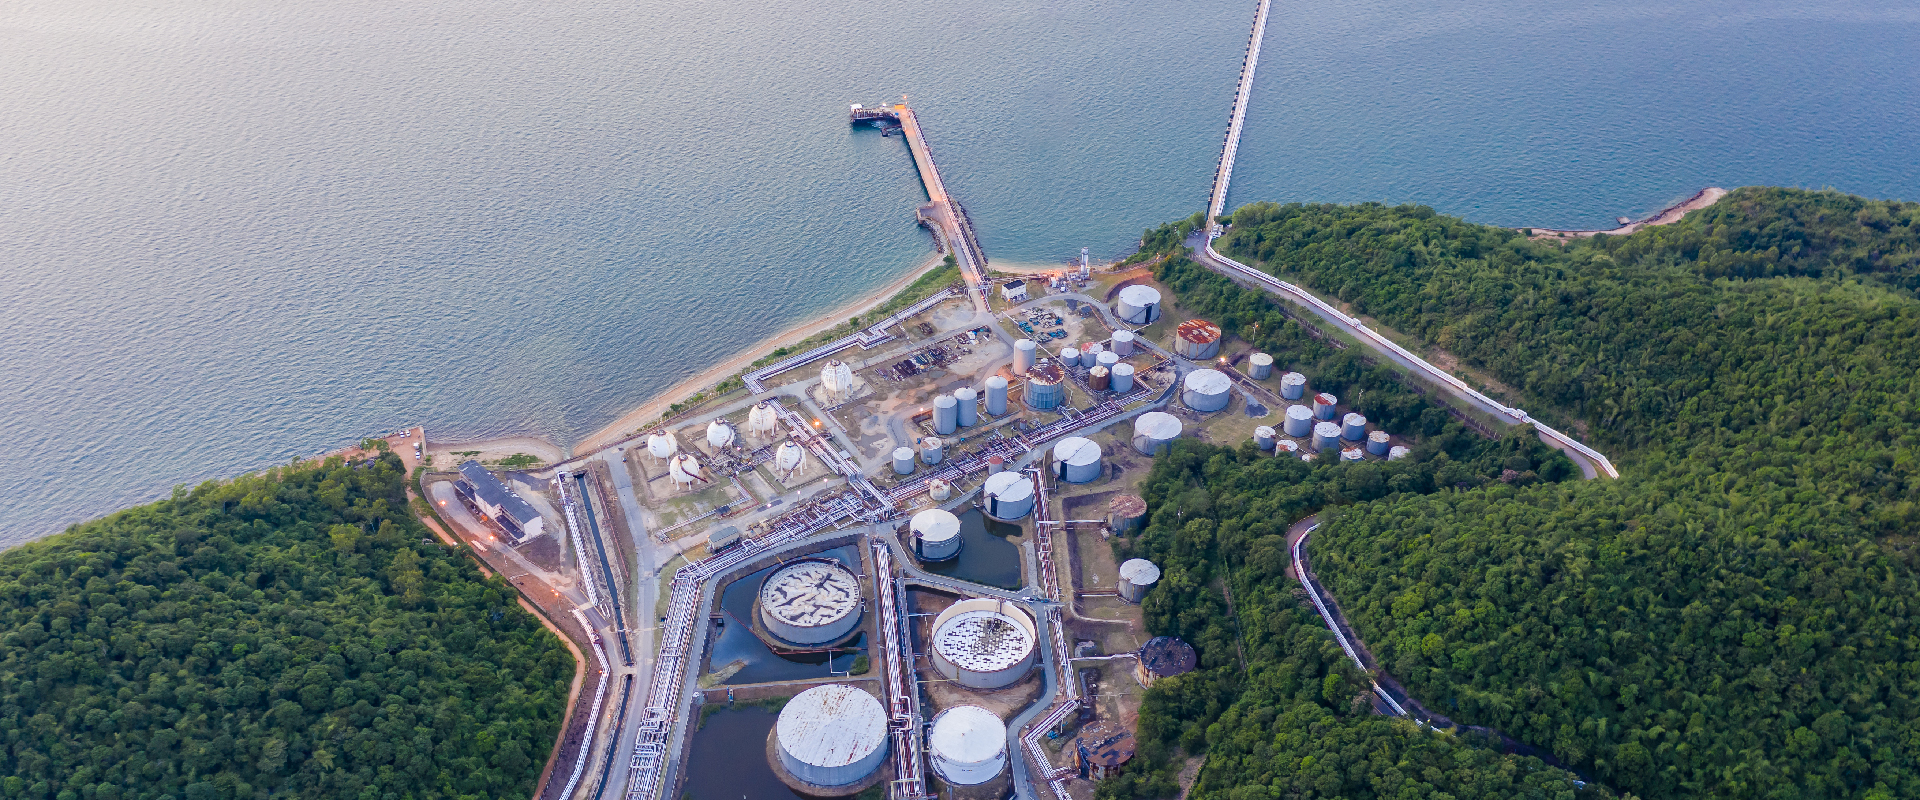 refinery tanker zone on island in Thailand